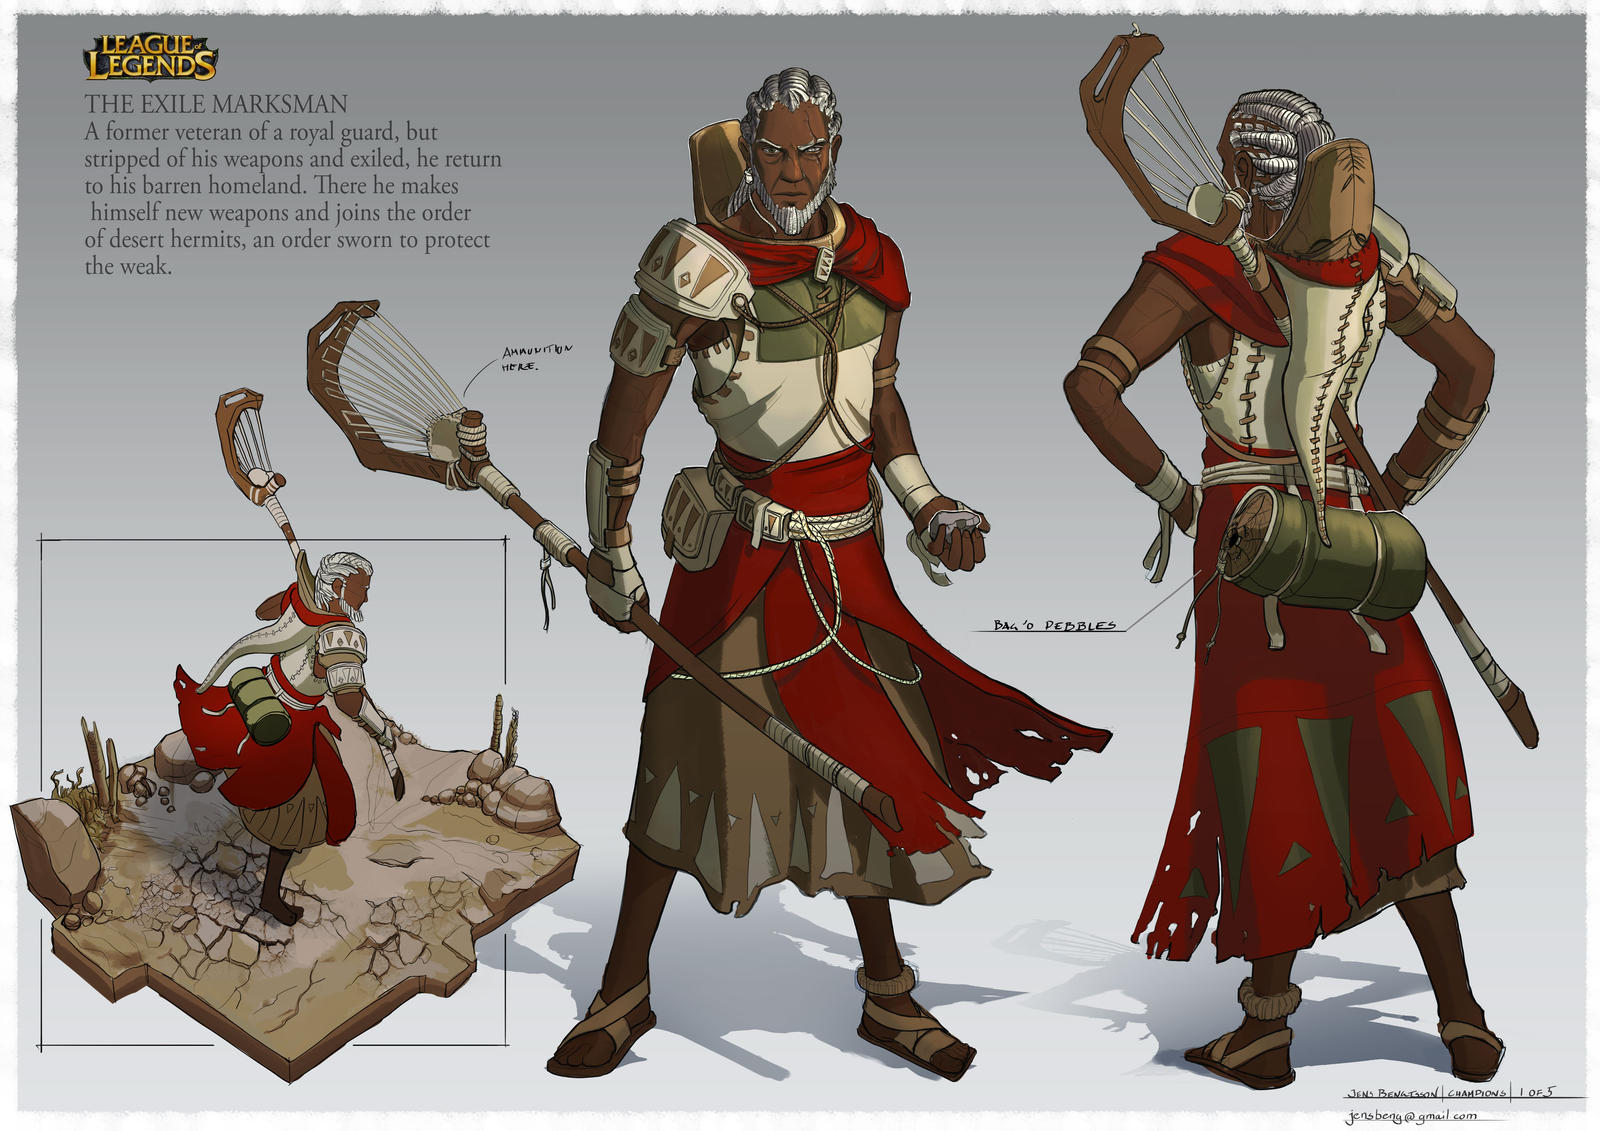 League Of Legends Character Design Contest : Marksman champion project by caconymdesign on deviantart